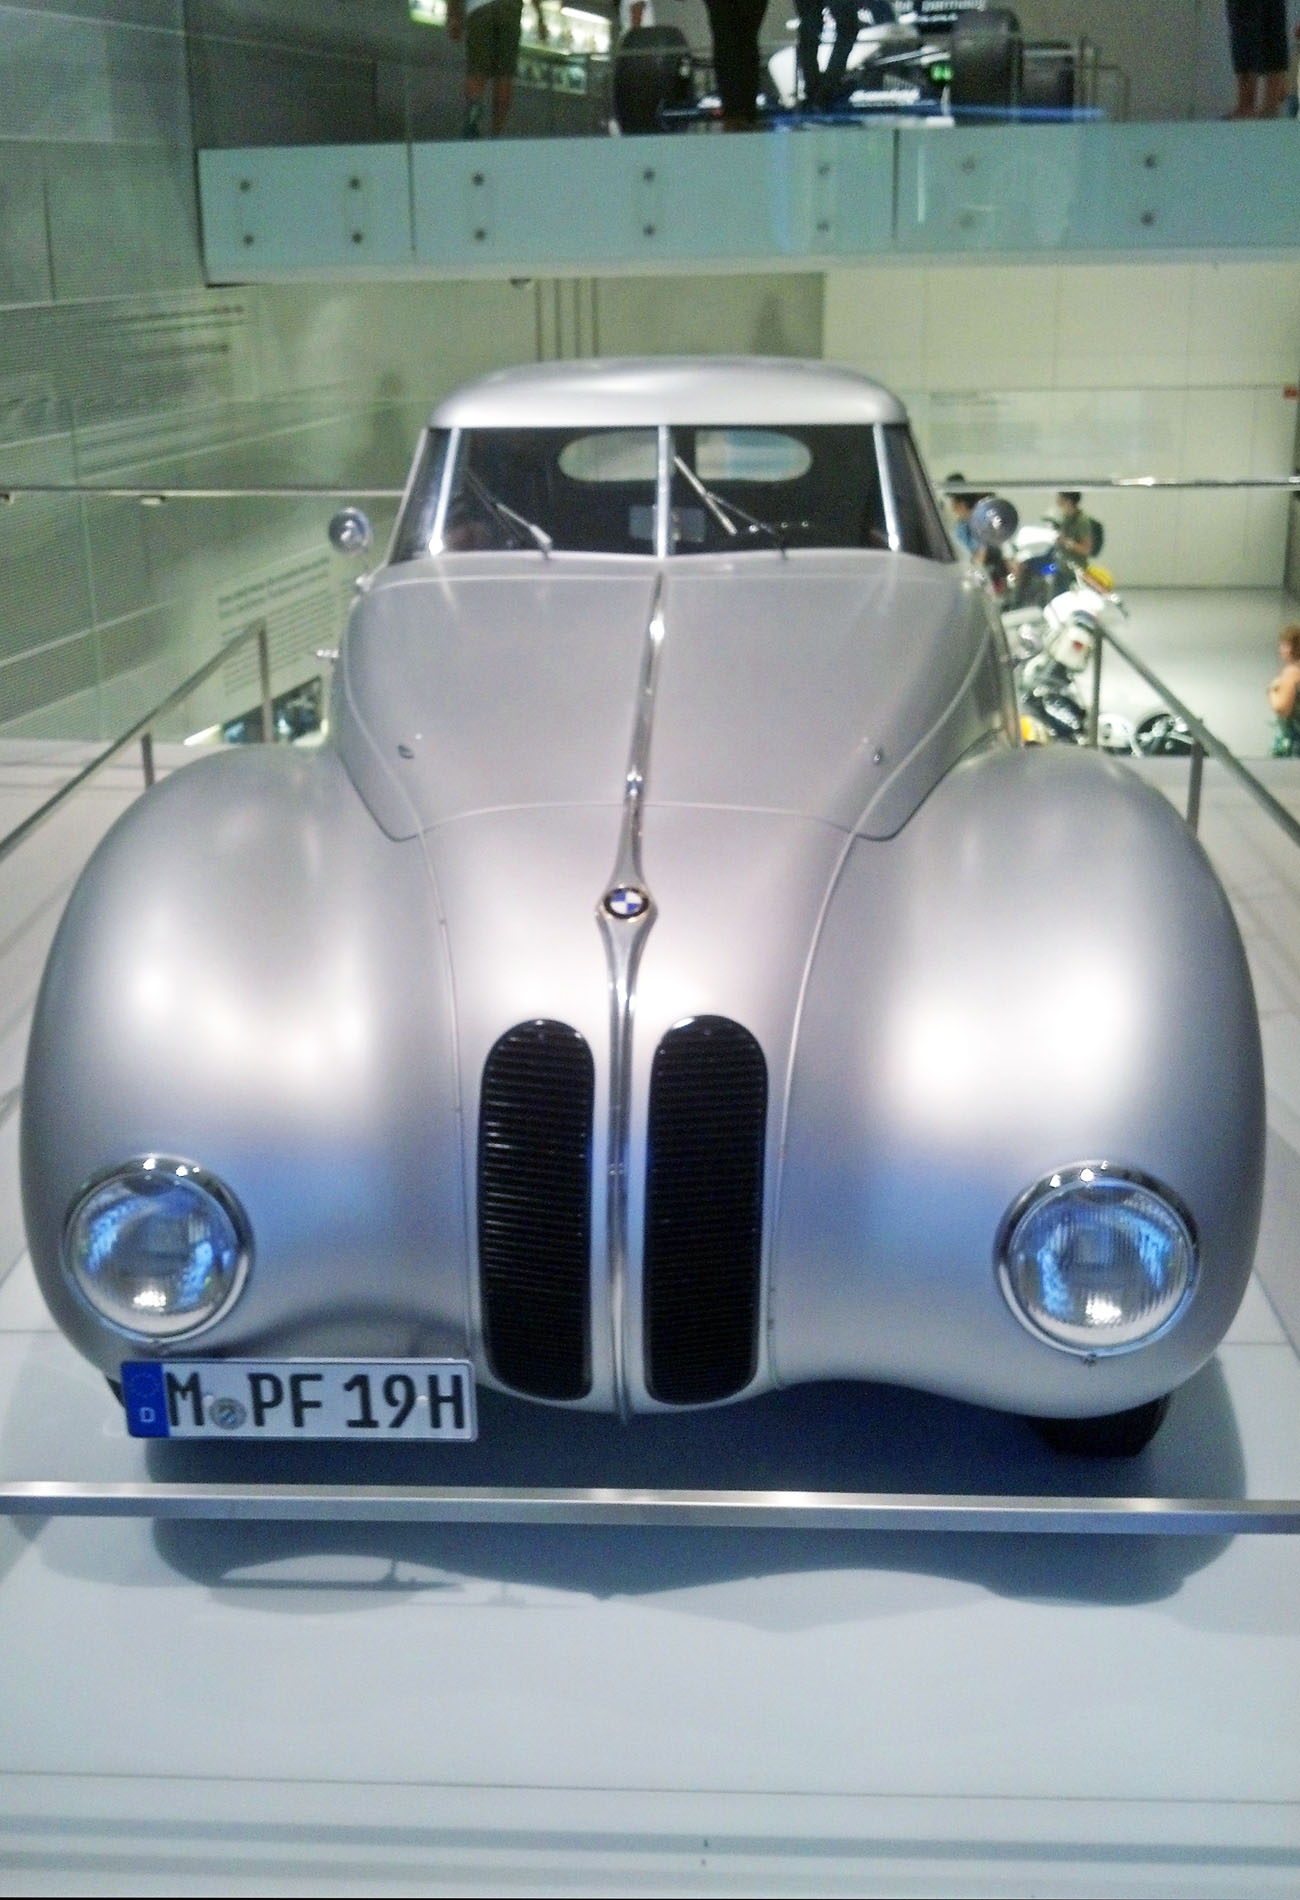 Another classic BMW.